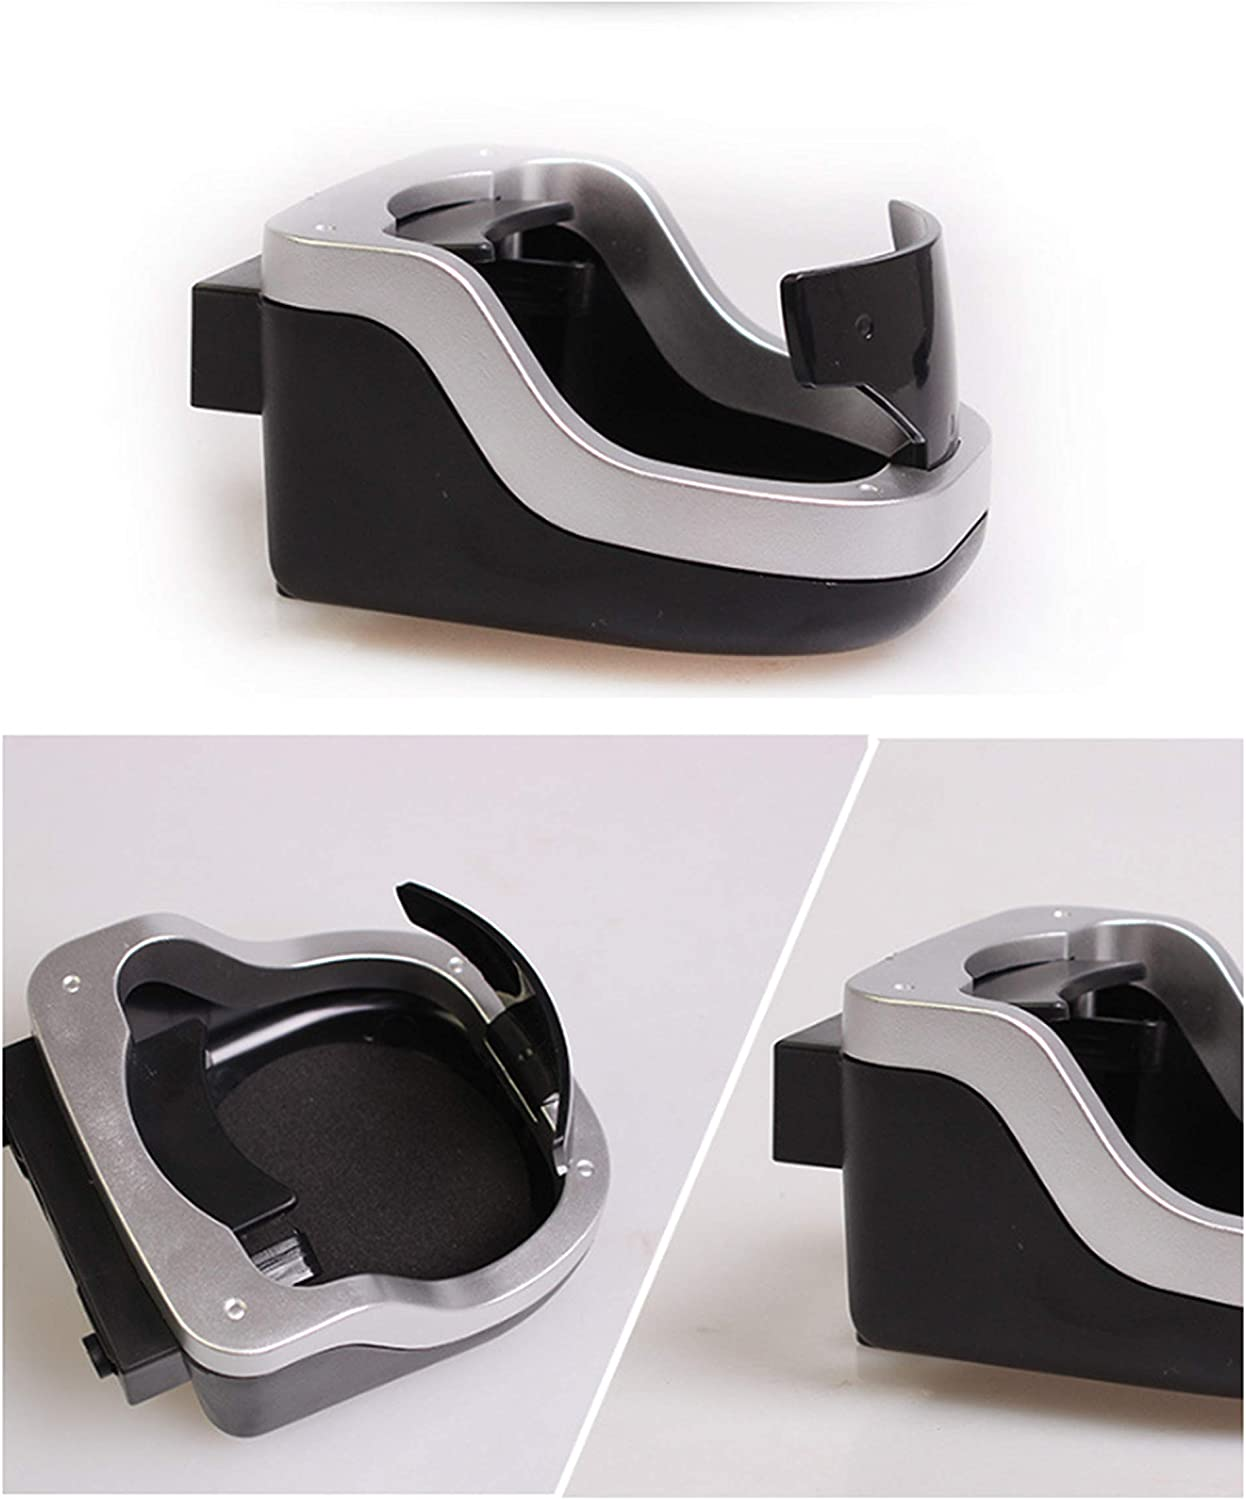 XIAFEN Car Drink Holder Air Cooler//Heater Can Holder Ventilation Holder for Coffee Cups and Drinks Can